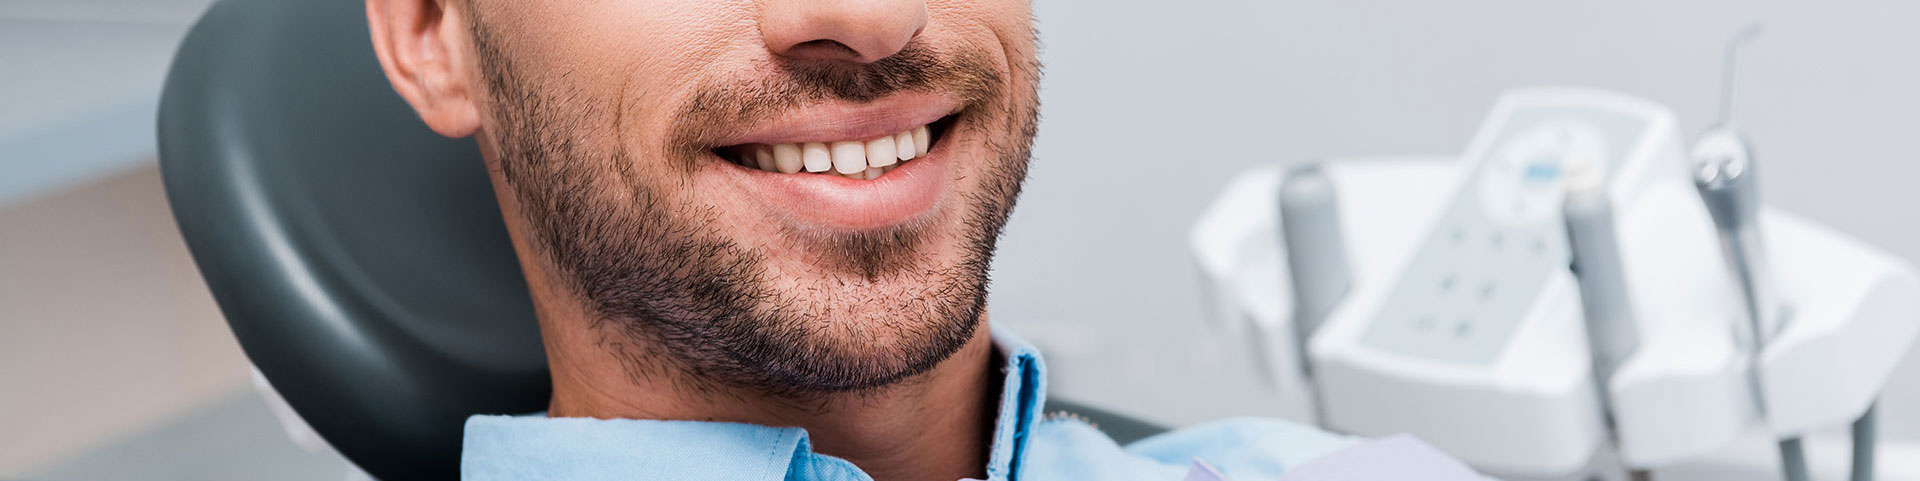 Patient smiling in dental clinic